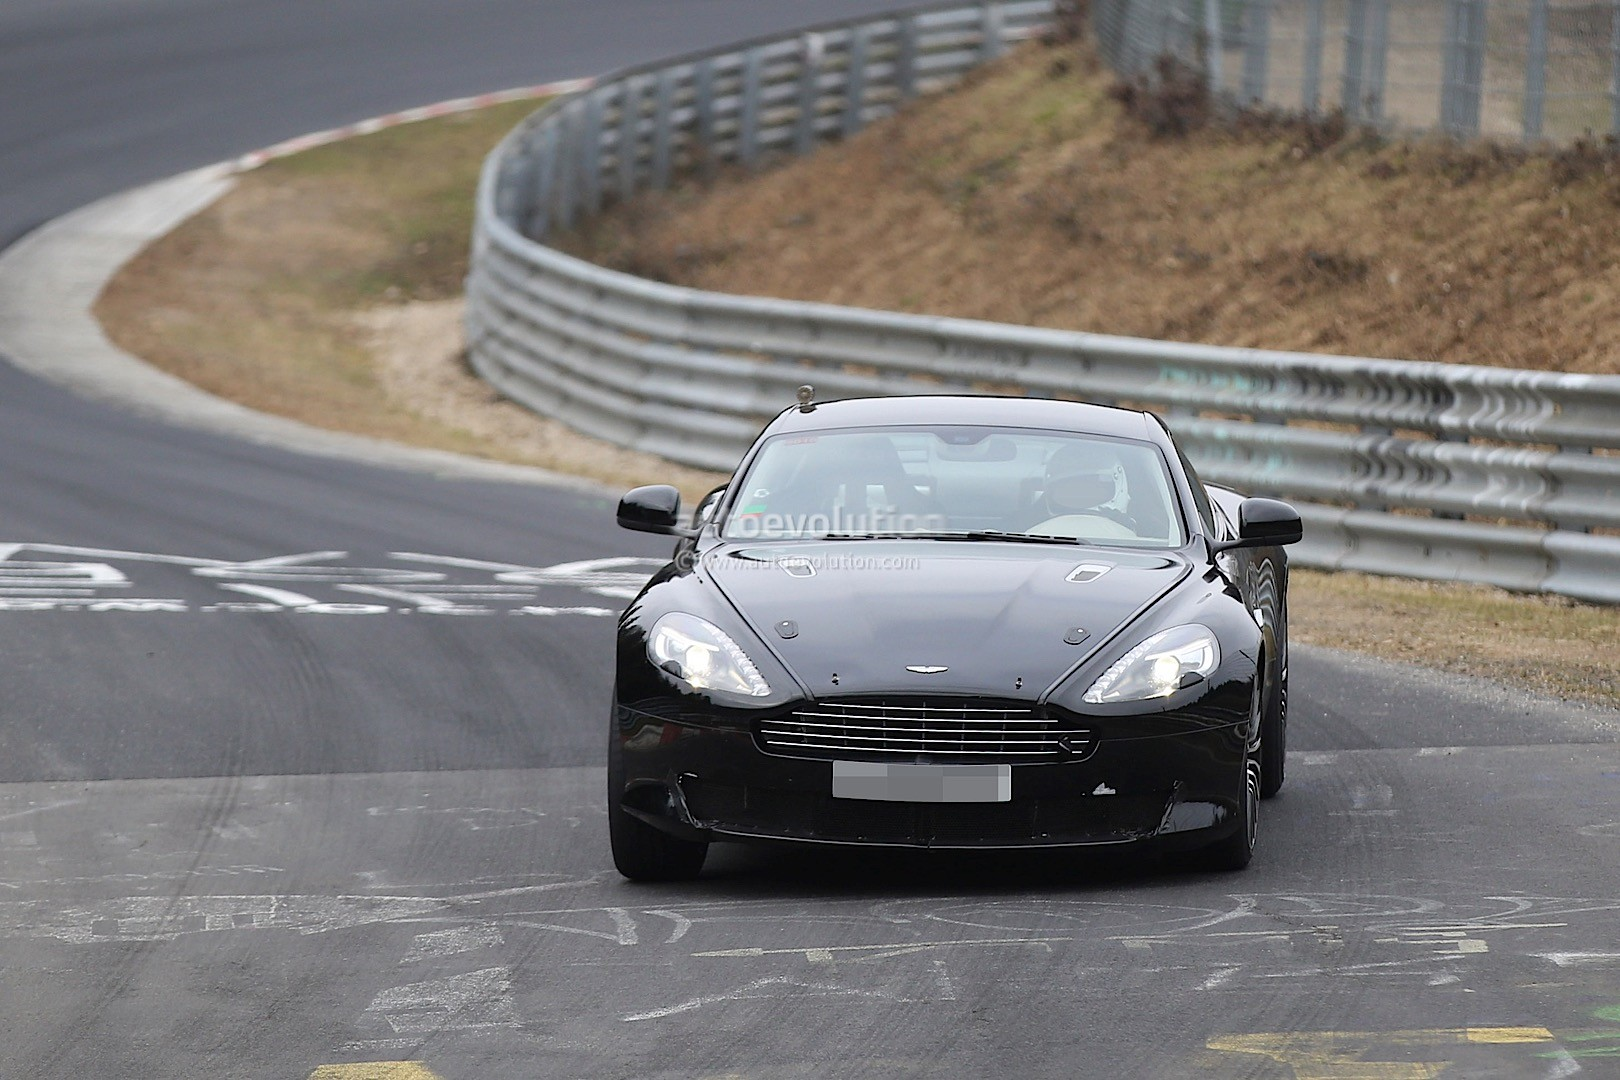 2016 Aston Martin DB9 Spied Its Powered By an Atmospheric V12